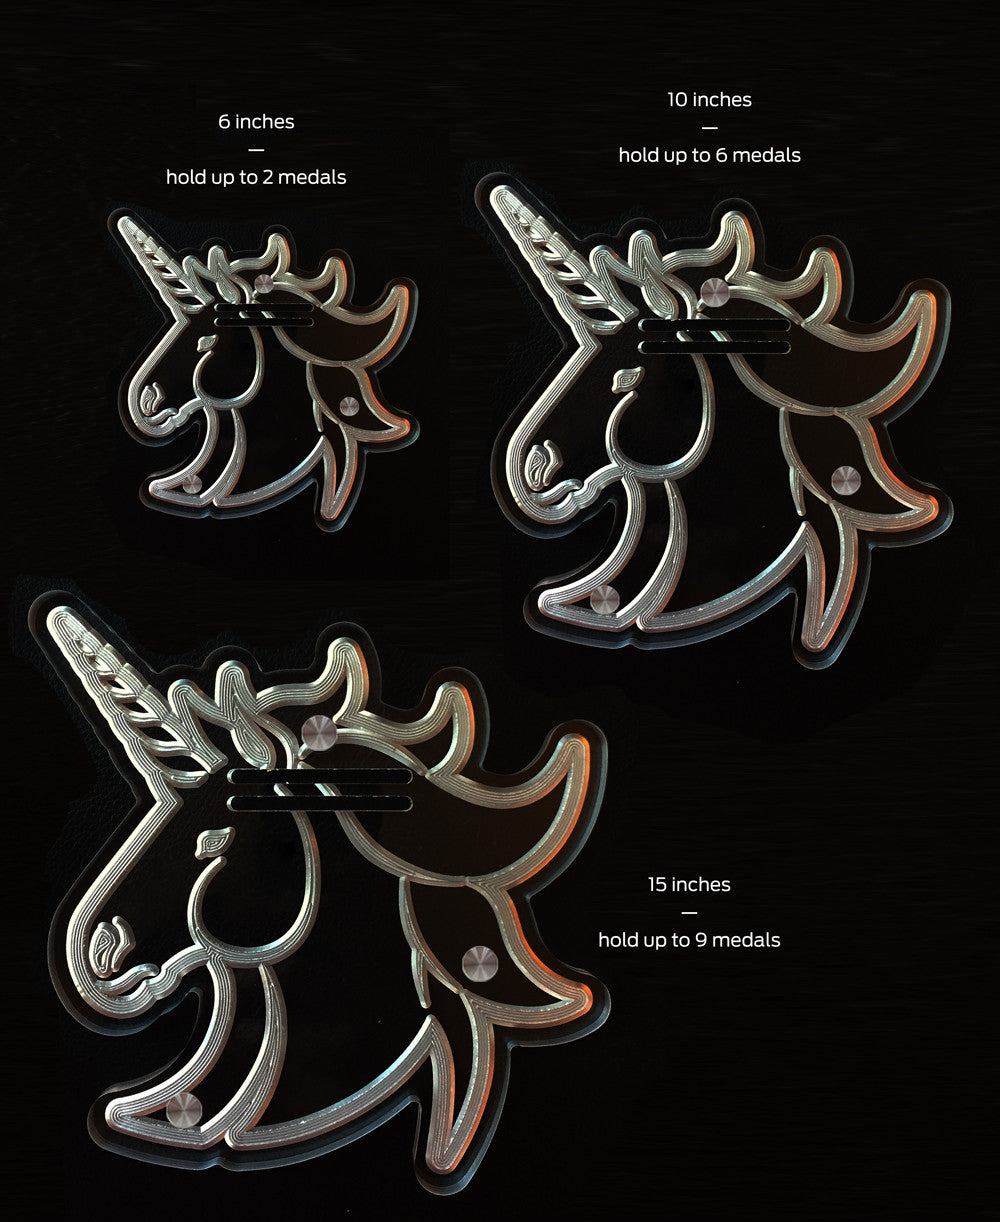 Personalized Unicorn Etched Acrylic Art 6 inch Medal Display (1-2 medals)